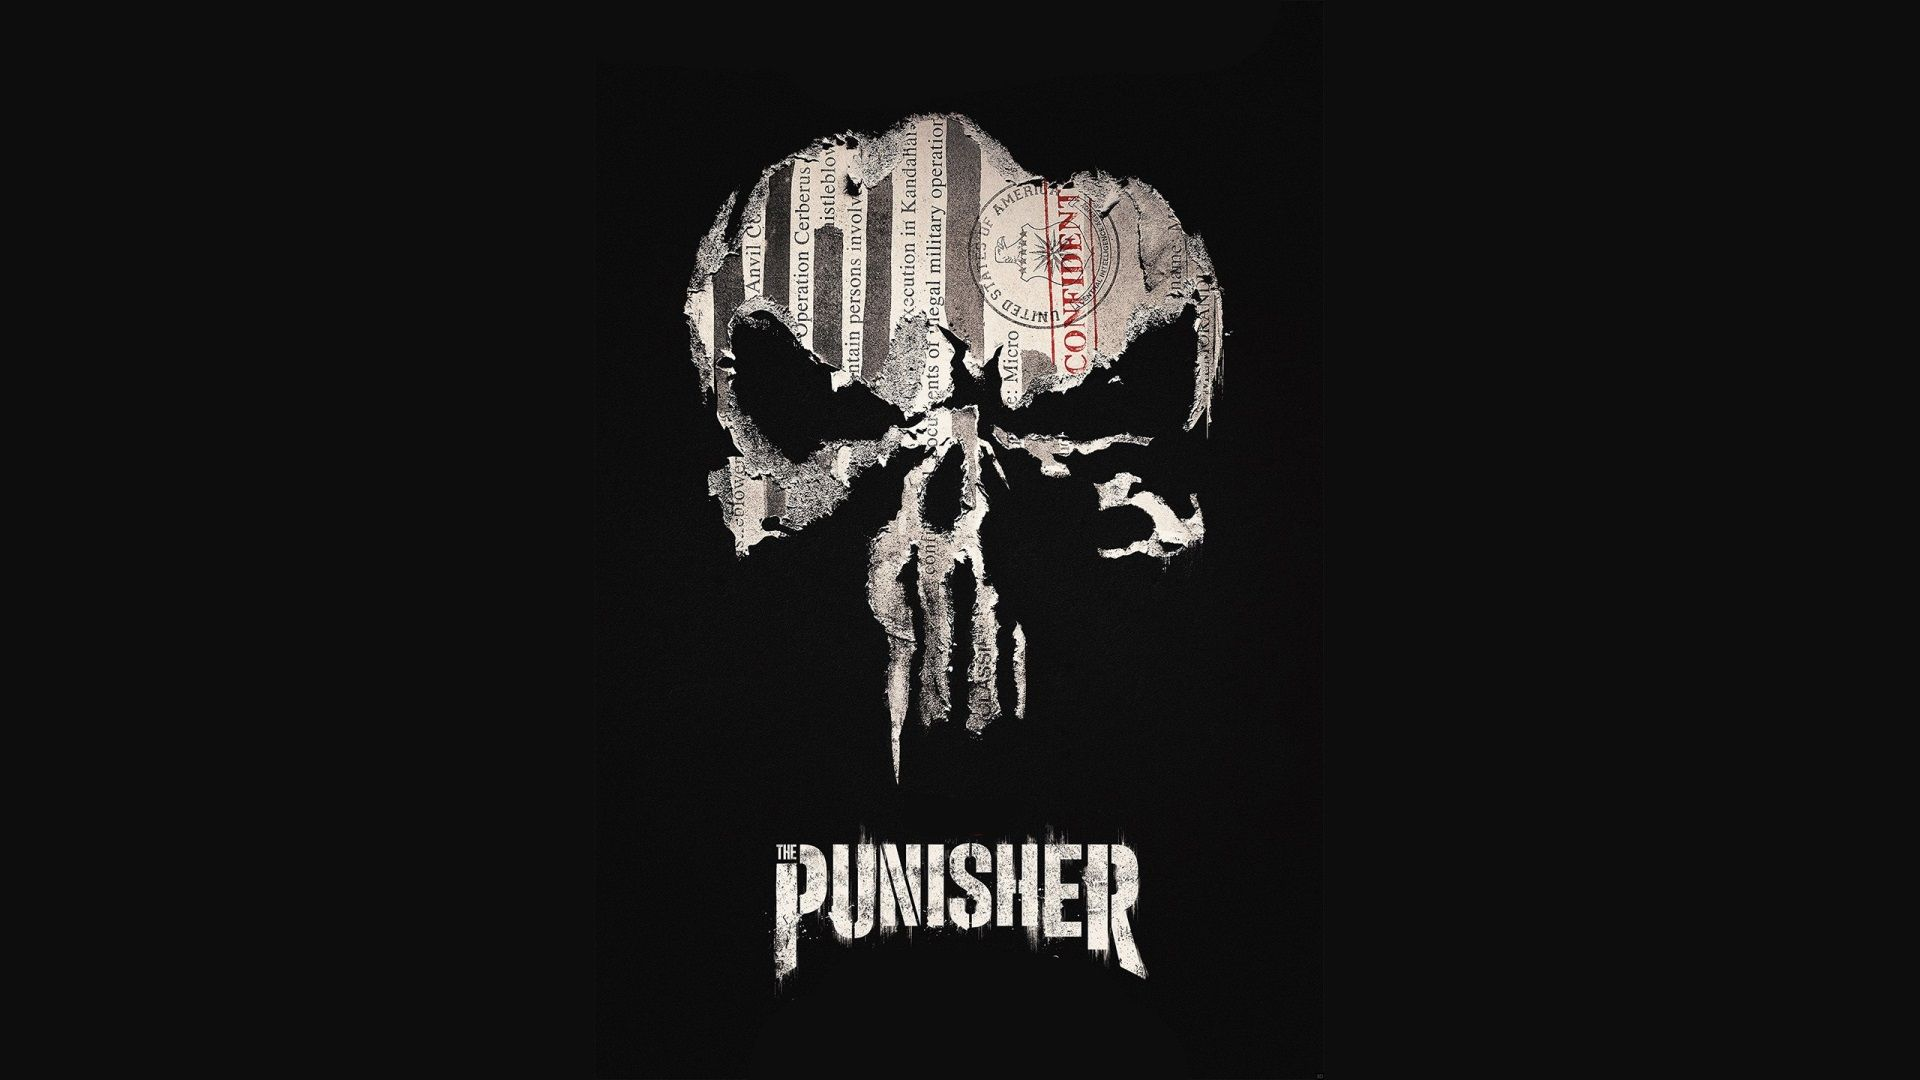 1920x1080 punisher wallpaper pictures free Marvel